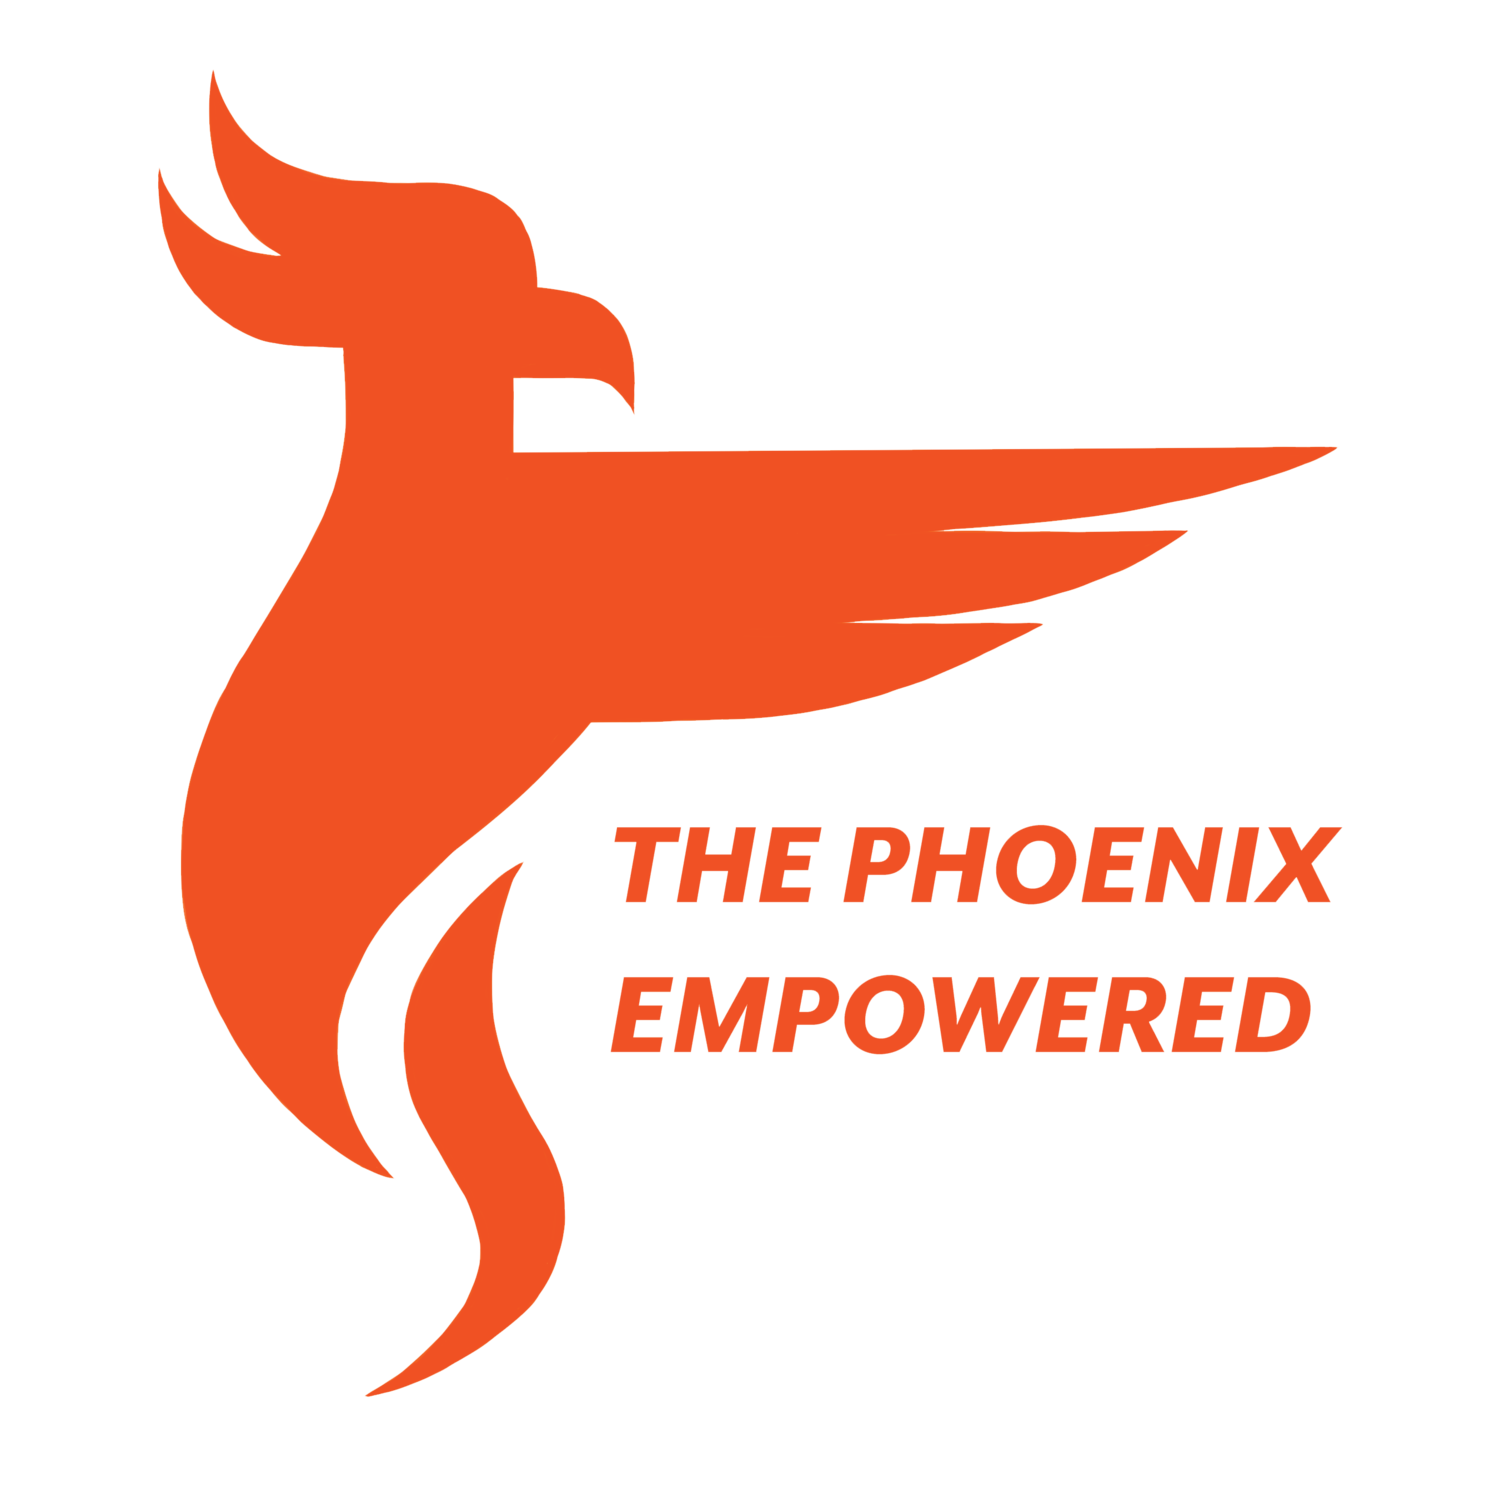 The Phoenix Empowered